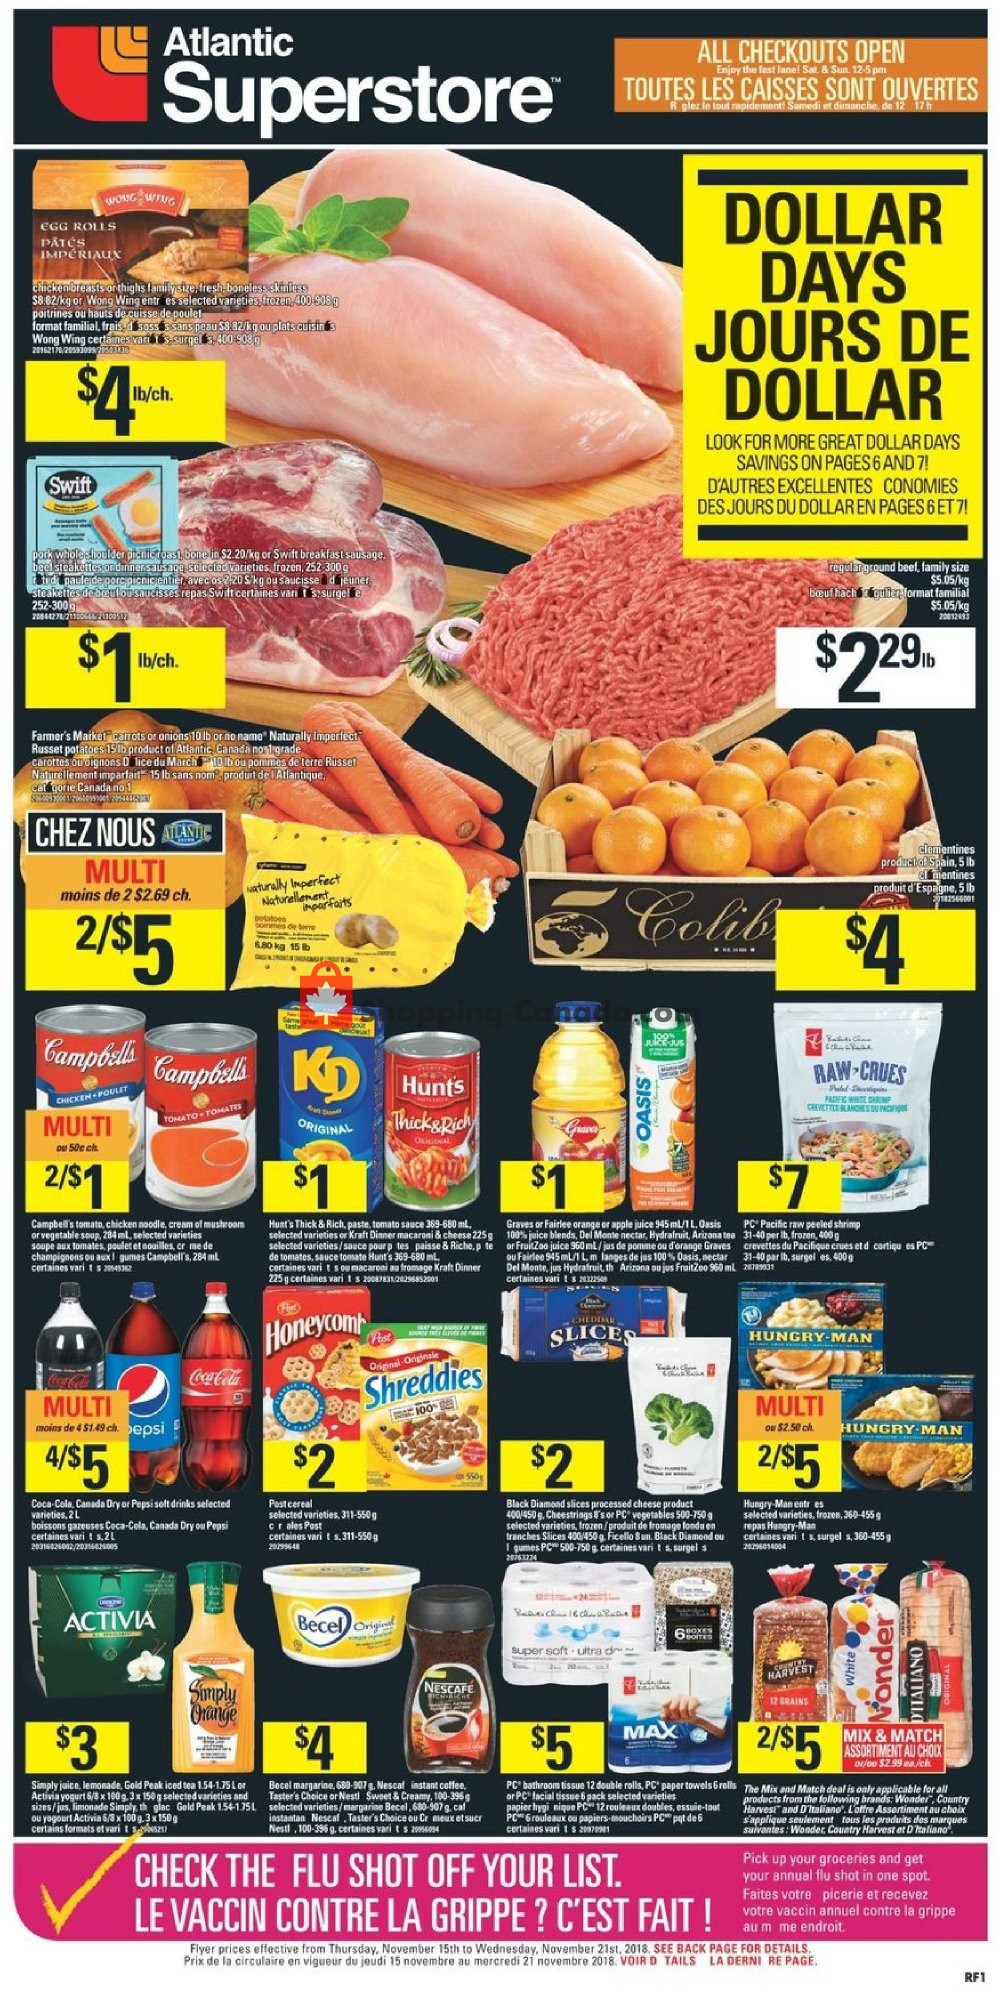 Flyer Atlantic Superstore Canada - from Thursday November 15, 2018 to Wednesday November 21, 2018